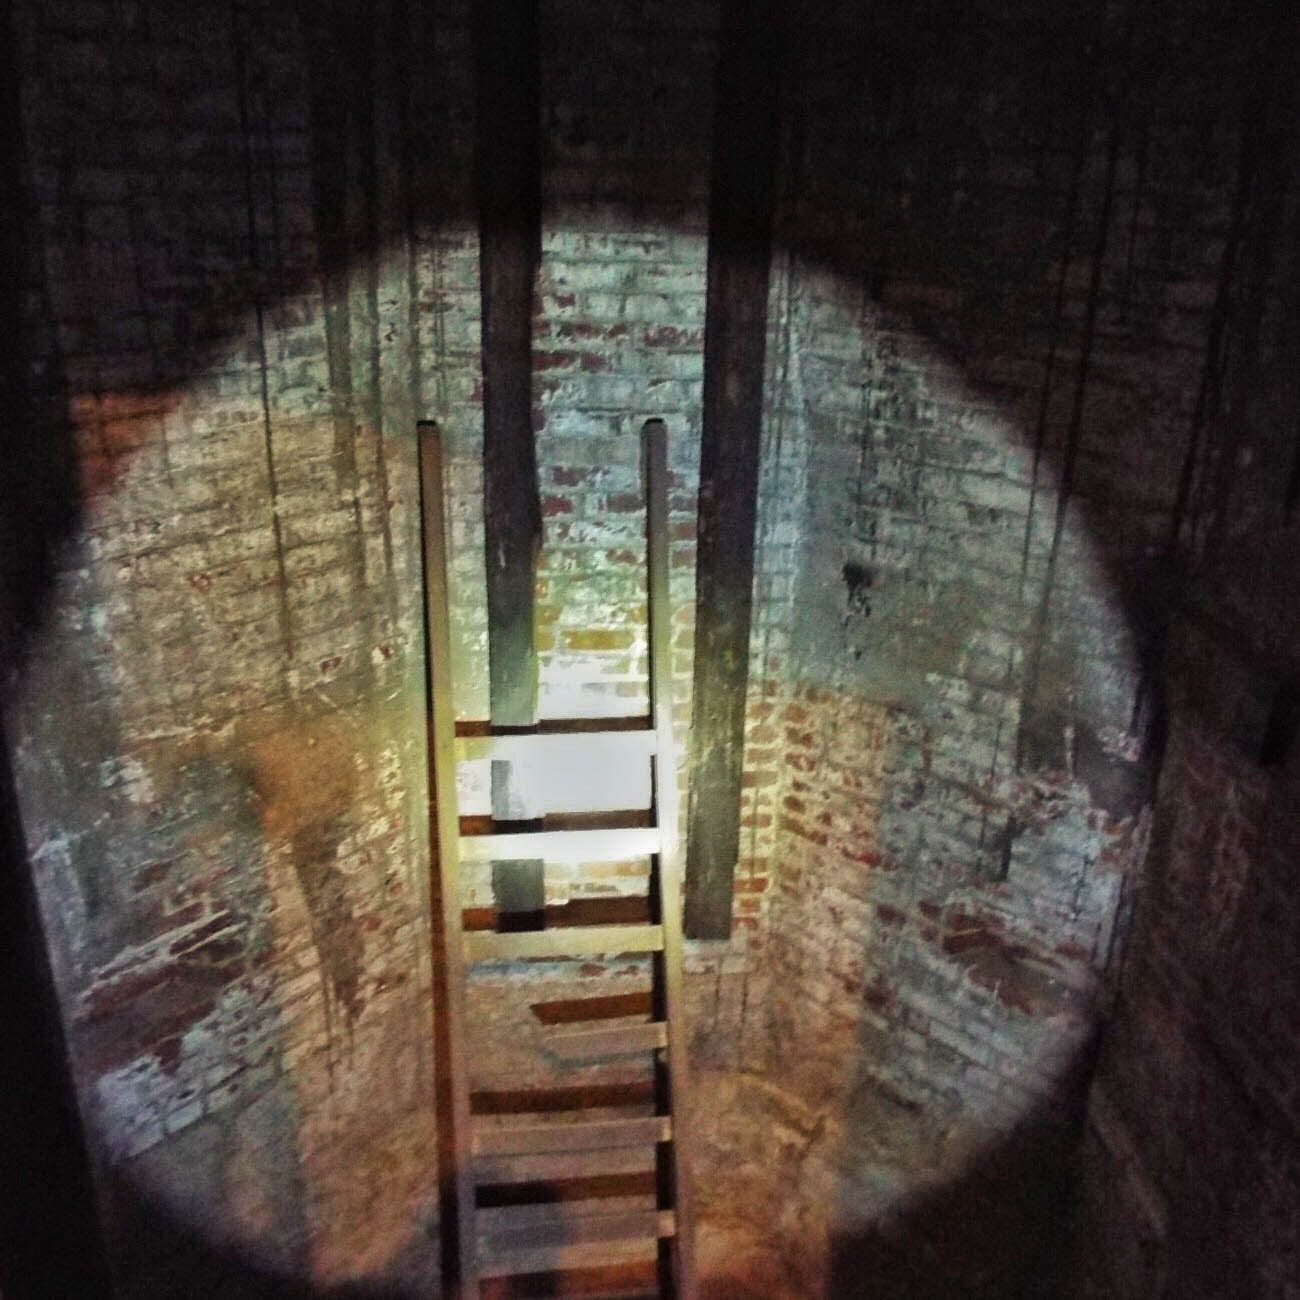 To the left of the Standpipe's entry is a door to the empty elevator shaft leading up the turret. All that resides in the dark shaft now is an old wooden ladder. / Image: Amy Bauer // Published: 3.14.19